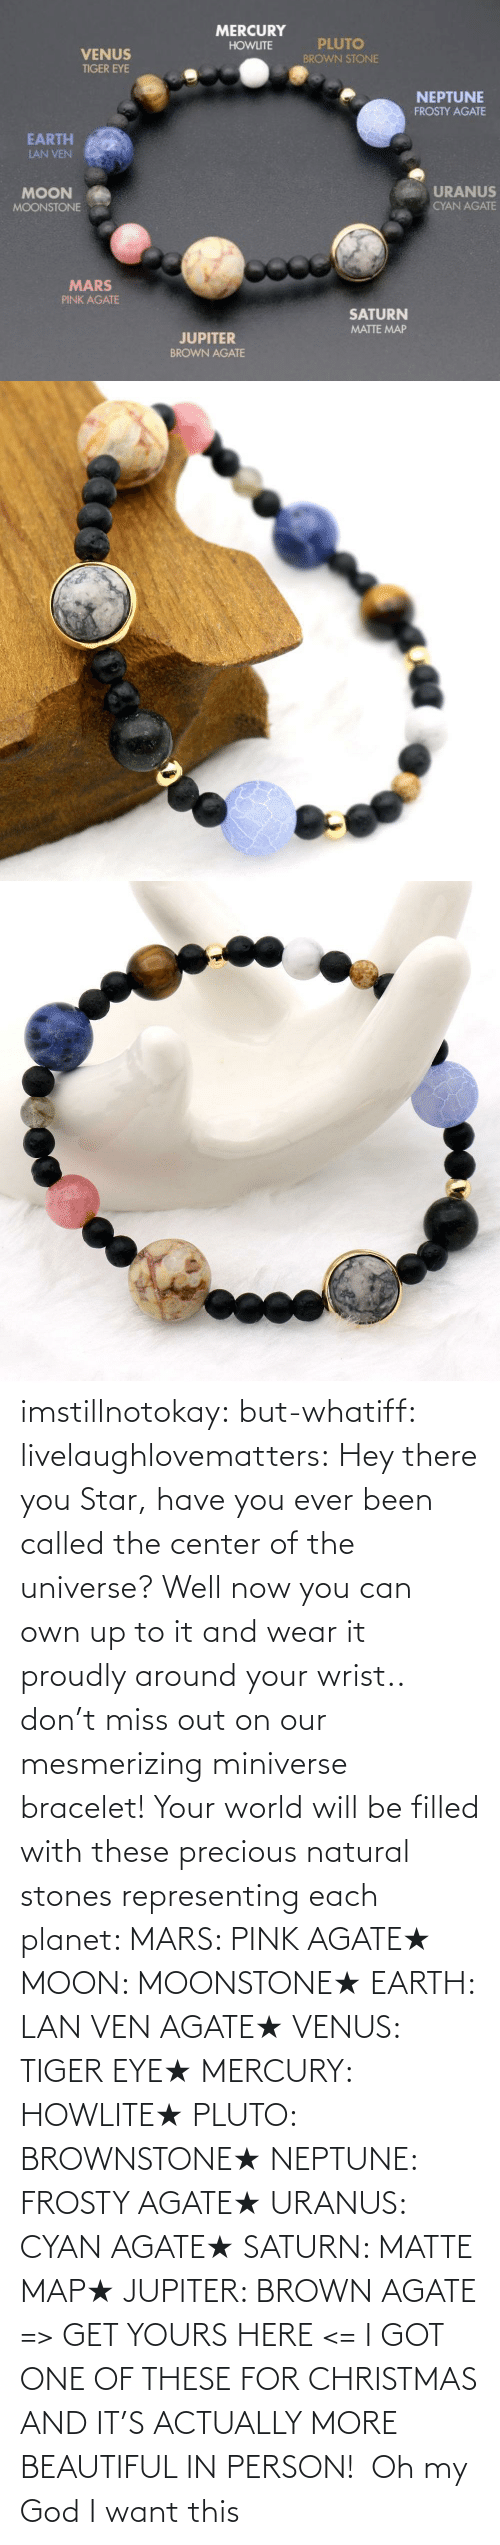 Planets: imstillnotokay: but-whatiff:  livelaughlovematters:  Hey there you Star, have you ever been called the center of the universe? Well now you can own up to it and wear it proudly around your wrist.. don't miss out on our mesmerizing miniverse bracelet! Your world will be filled with these precious natural stones representing each planet:  MARS: PINK AGATE★ MOON: MOONSTONE★ EARTH: LAN VEN AGATE★ VENUS: TIGER EYE★ MERCURY: HOWLITE★ PLUTO: BROWNSTONE★ NEPTUNE: FROSTY AGATE★ URANUS: CYAN AGATE★ SATURN: MATTE MAP★ JUPITER: BROWN AGATE => GET YOURS HERE <=  I GOT ONE OF THESE FOR CHRISTMAS AND IT'S ACTUALLY MORE BEAUTIFUL IN PERSON!     Oh my God I want this